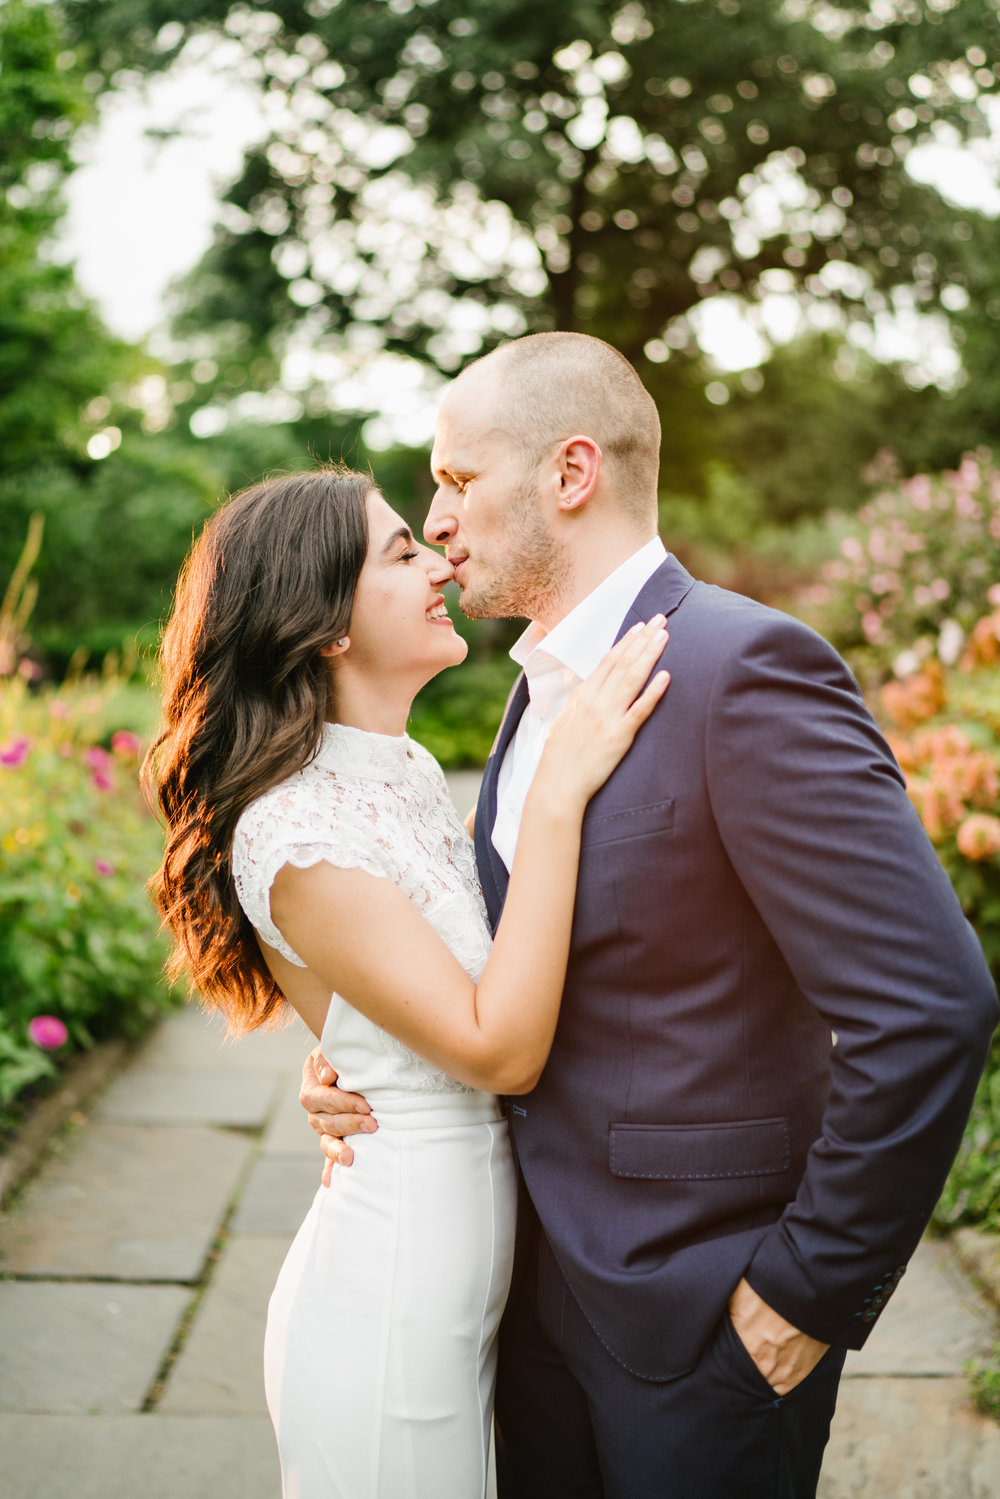 Central park weddings are the most fun, This beautiful couple had a gorgeous summer elopement in central park.